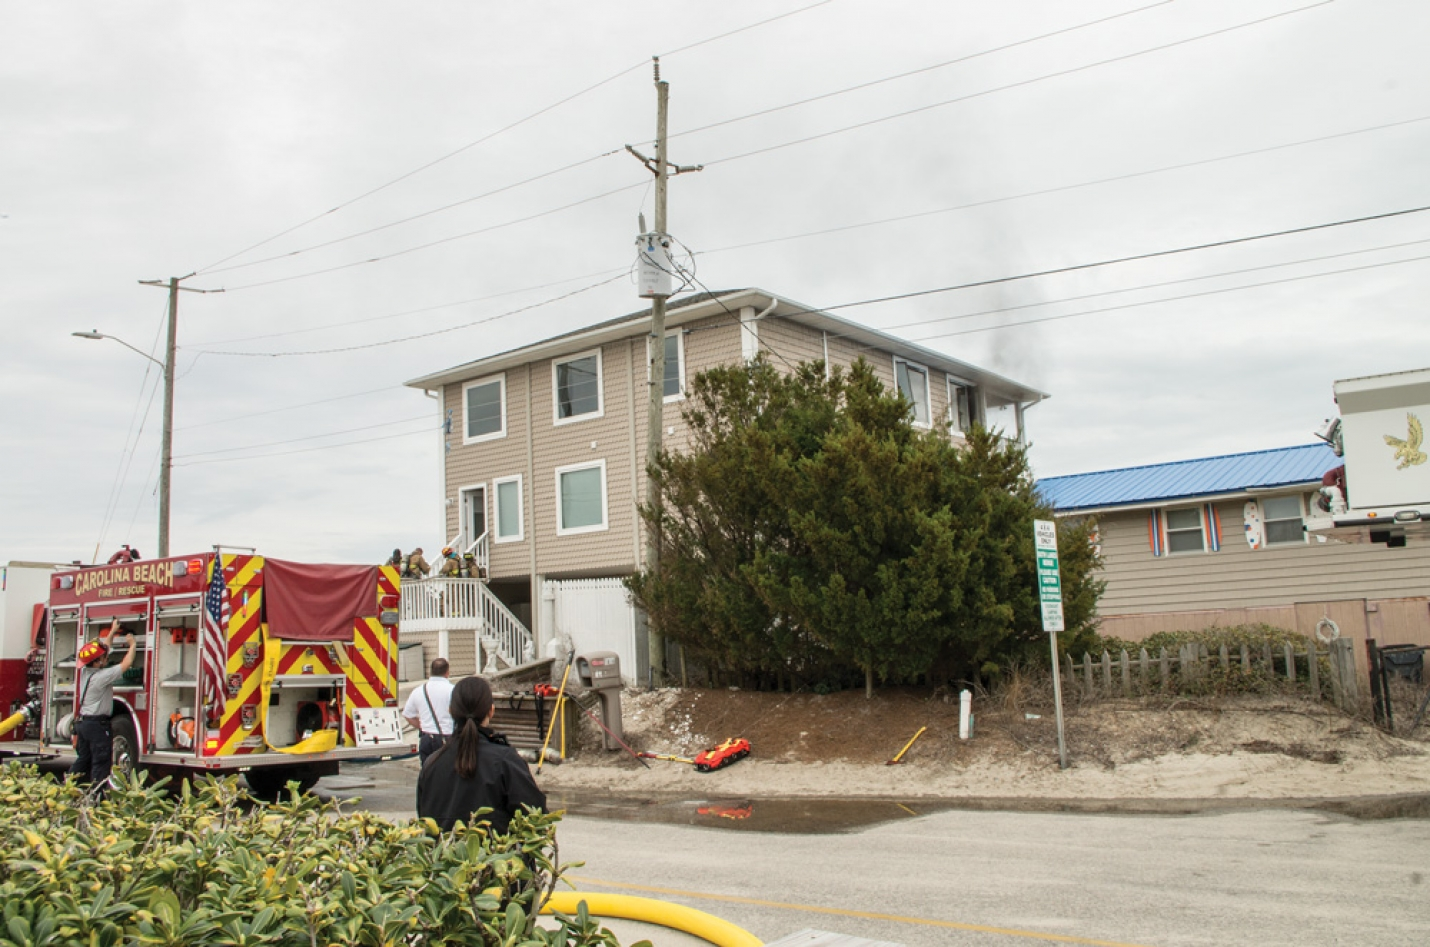 Carolina Beach Fire Department Prevents House Fire Monday Afternoon